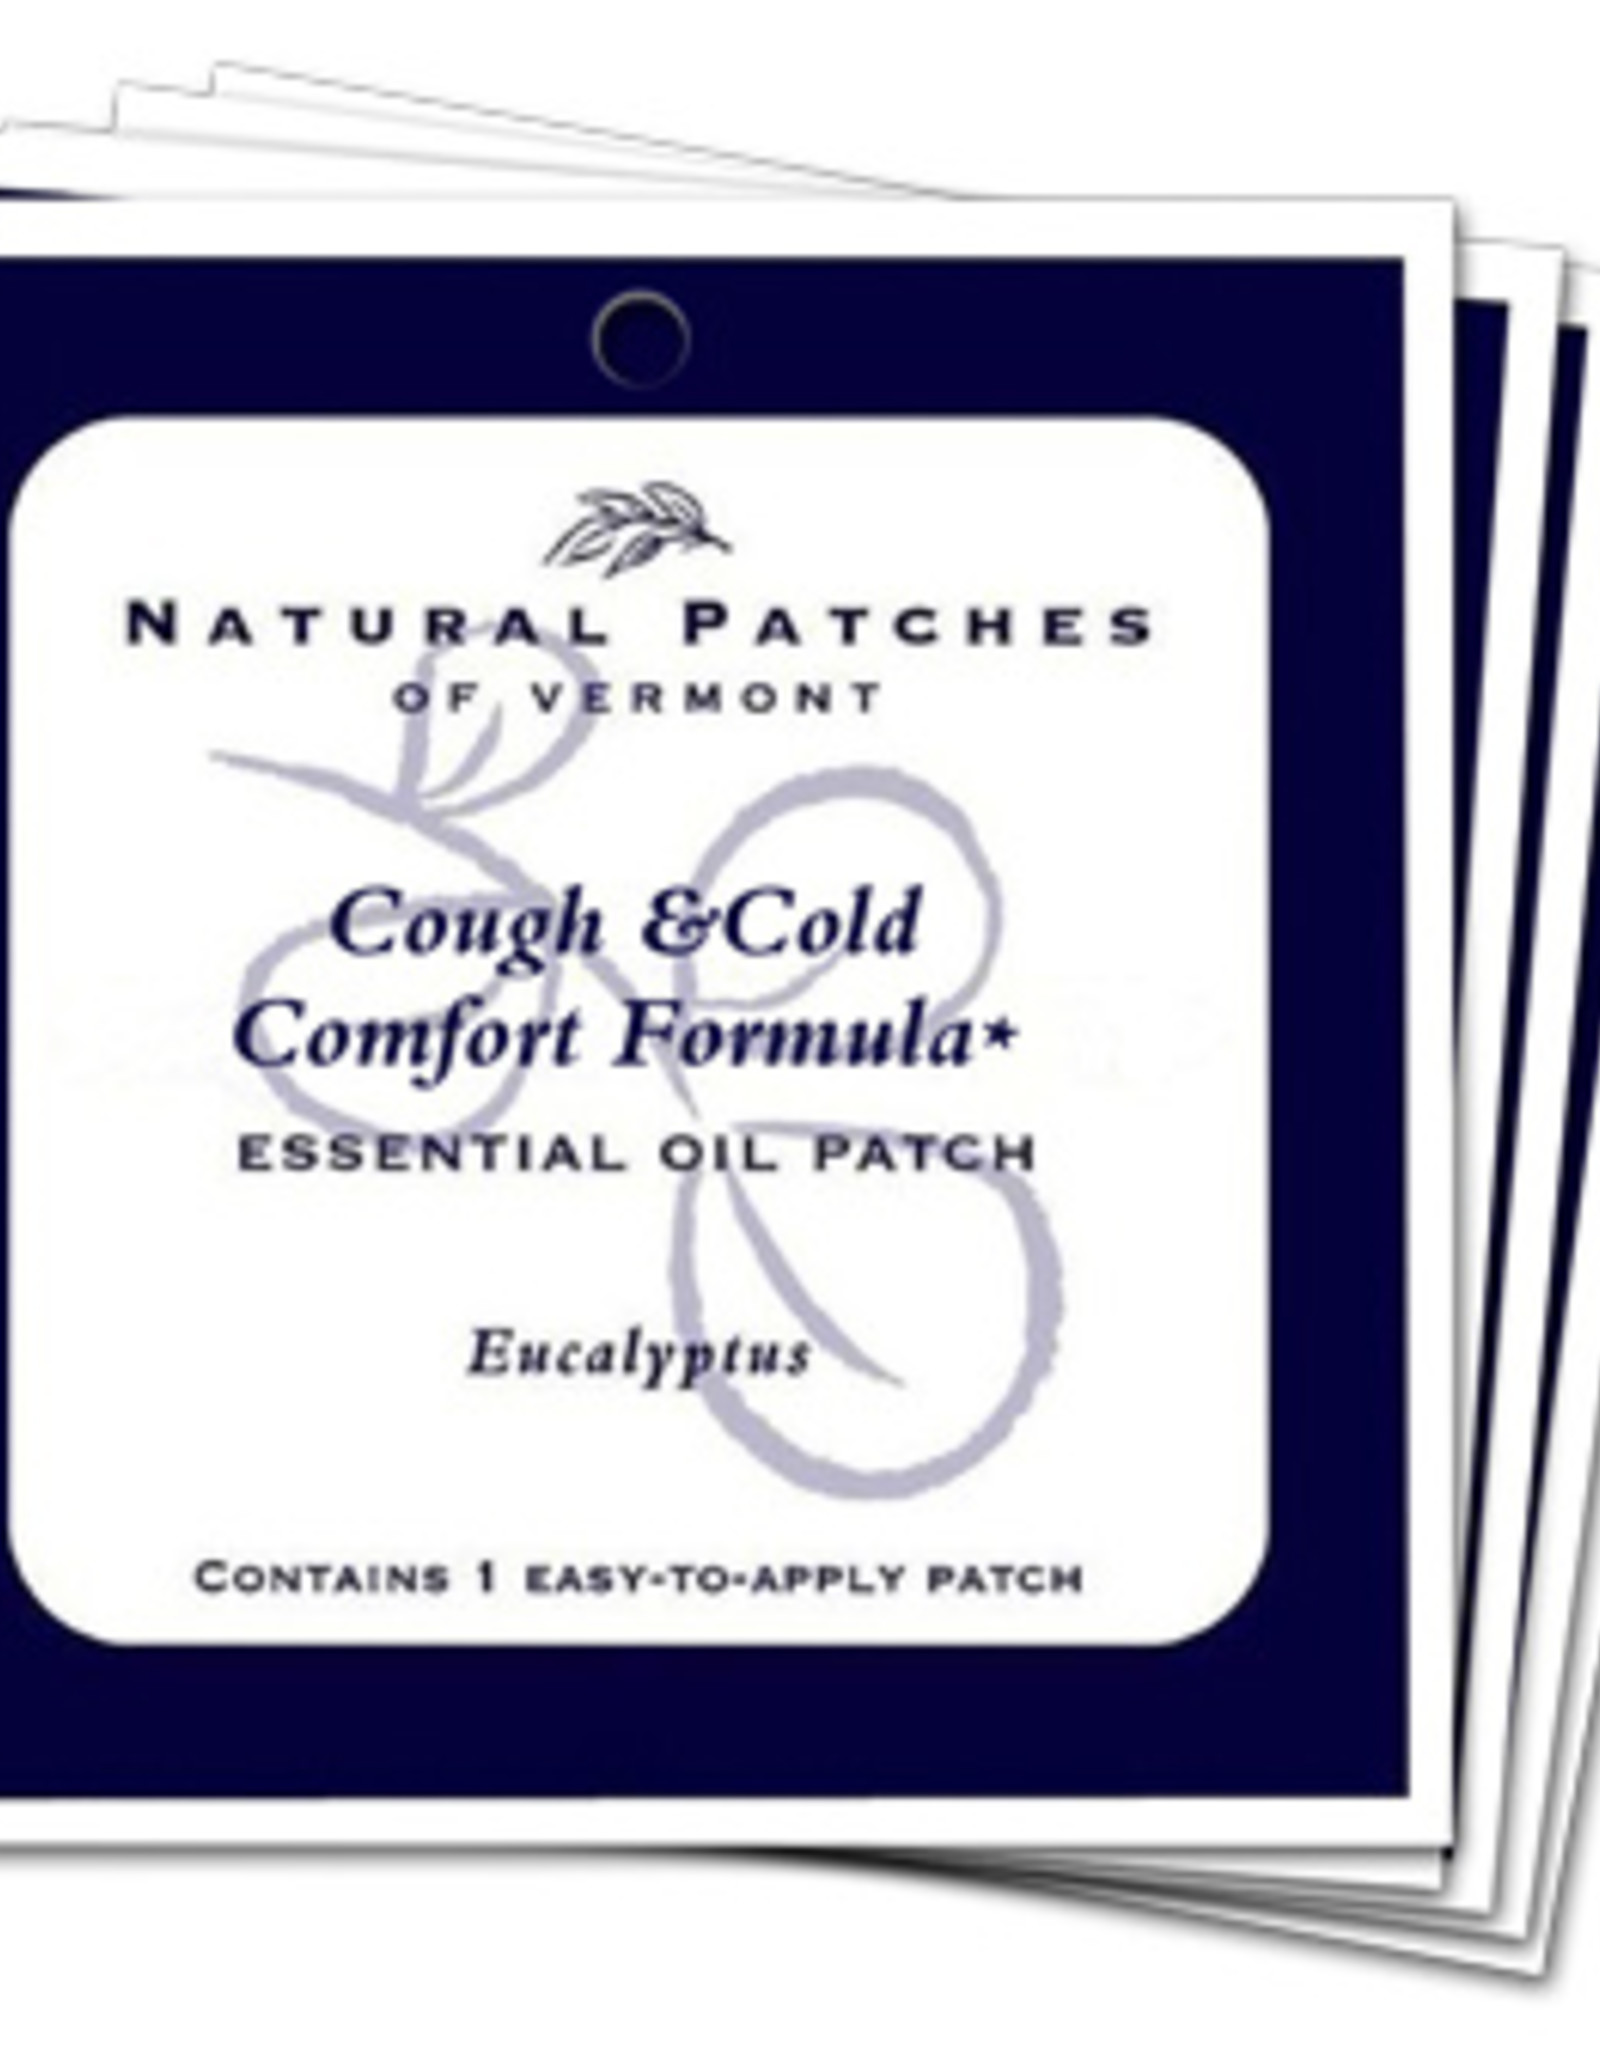 Natural Patches of Vermont Soothing Coughs & Colds Formula Single Patch